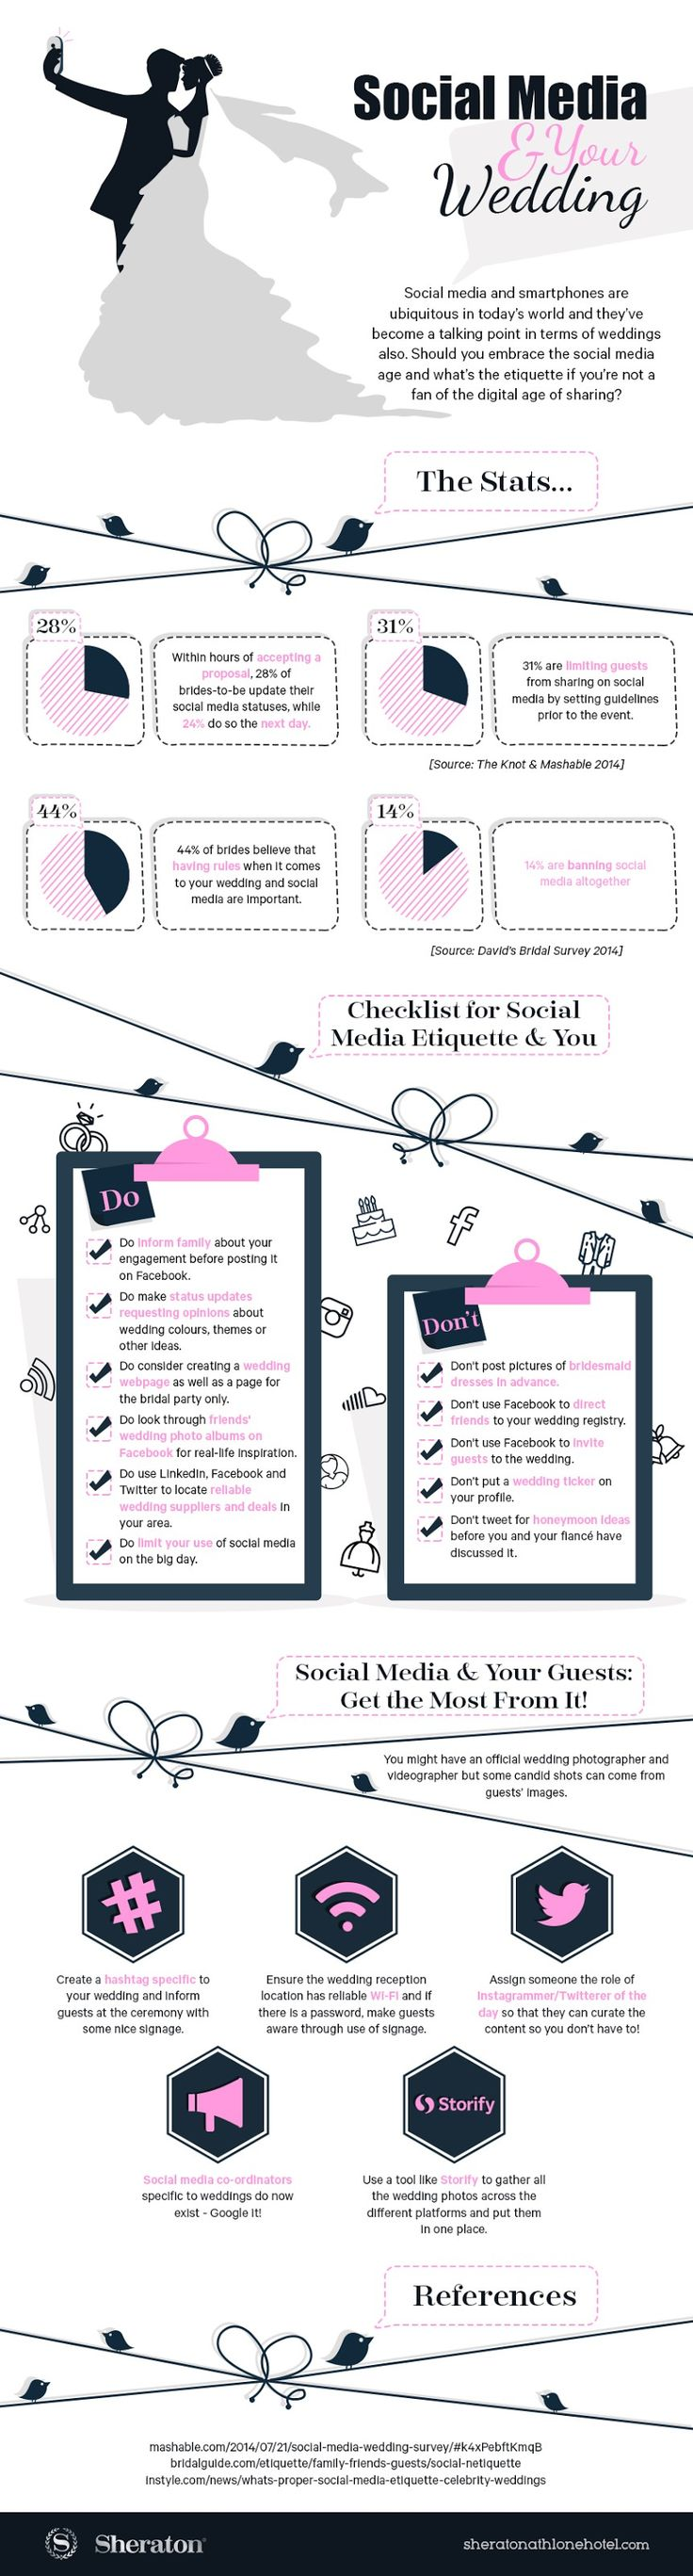 Social media can be a wonderful way to include your friends and family in your special day, but there are some things you may want to keep in mind when it comes time to share big news on Facebook, Instagram, Twitter, or other popular social sites. The wedding team at Sheraton Athlone Hotel was kind enough to share this fun infographic about Social Media and Weddings for all of our readers to enjoy.